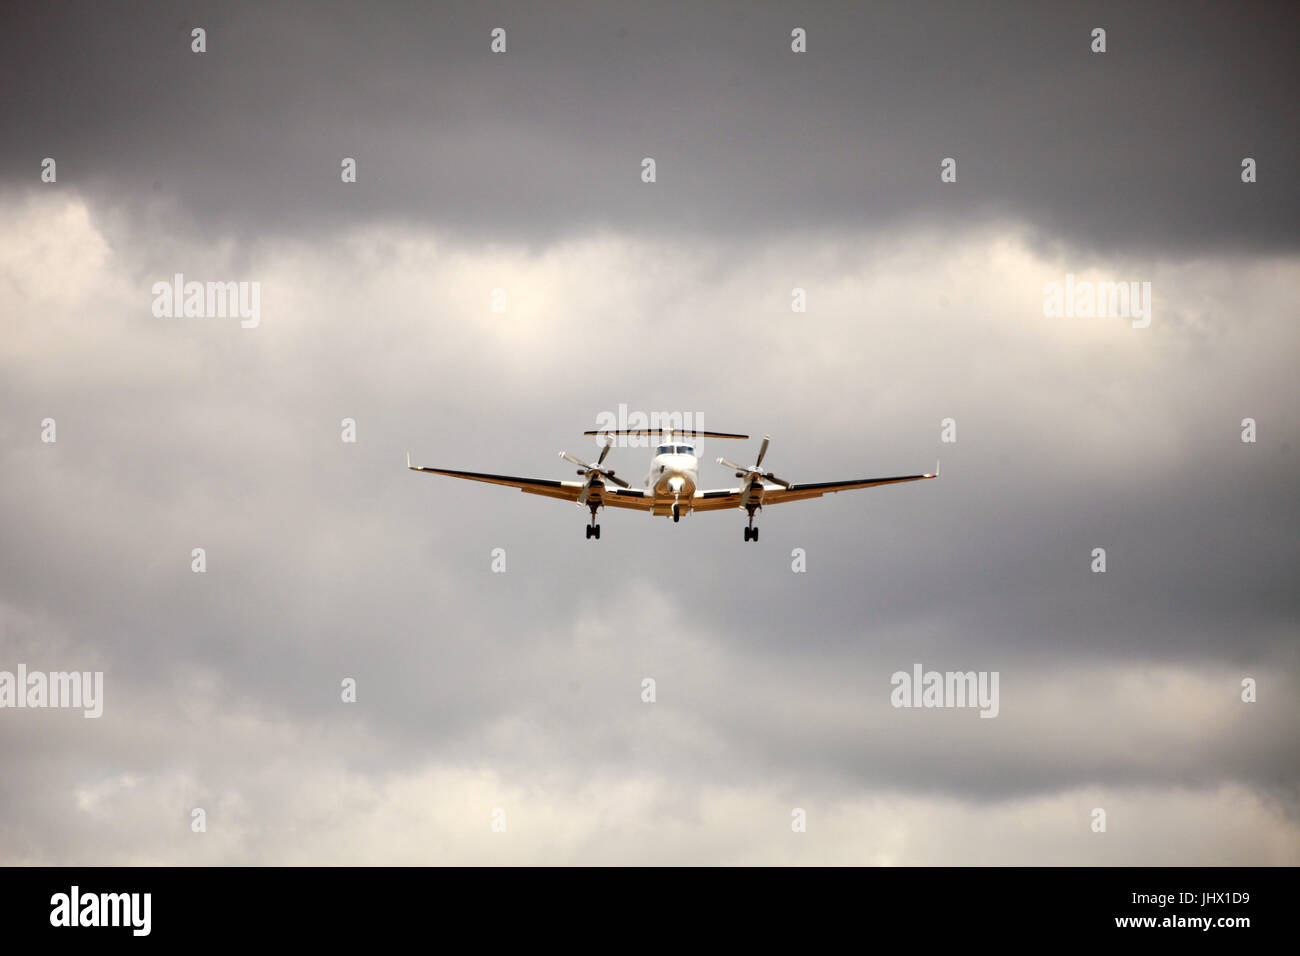 passenger aircraft landing at airport Stock Photo